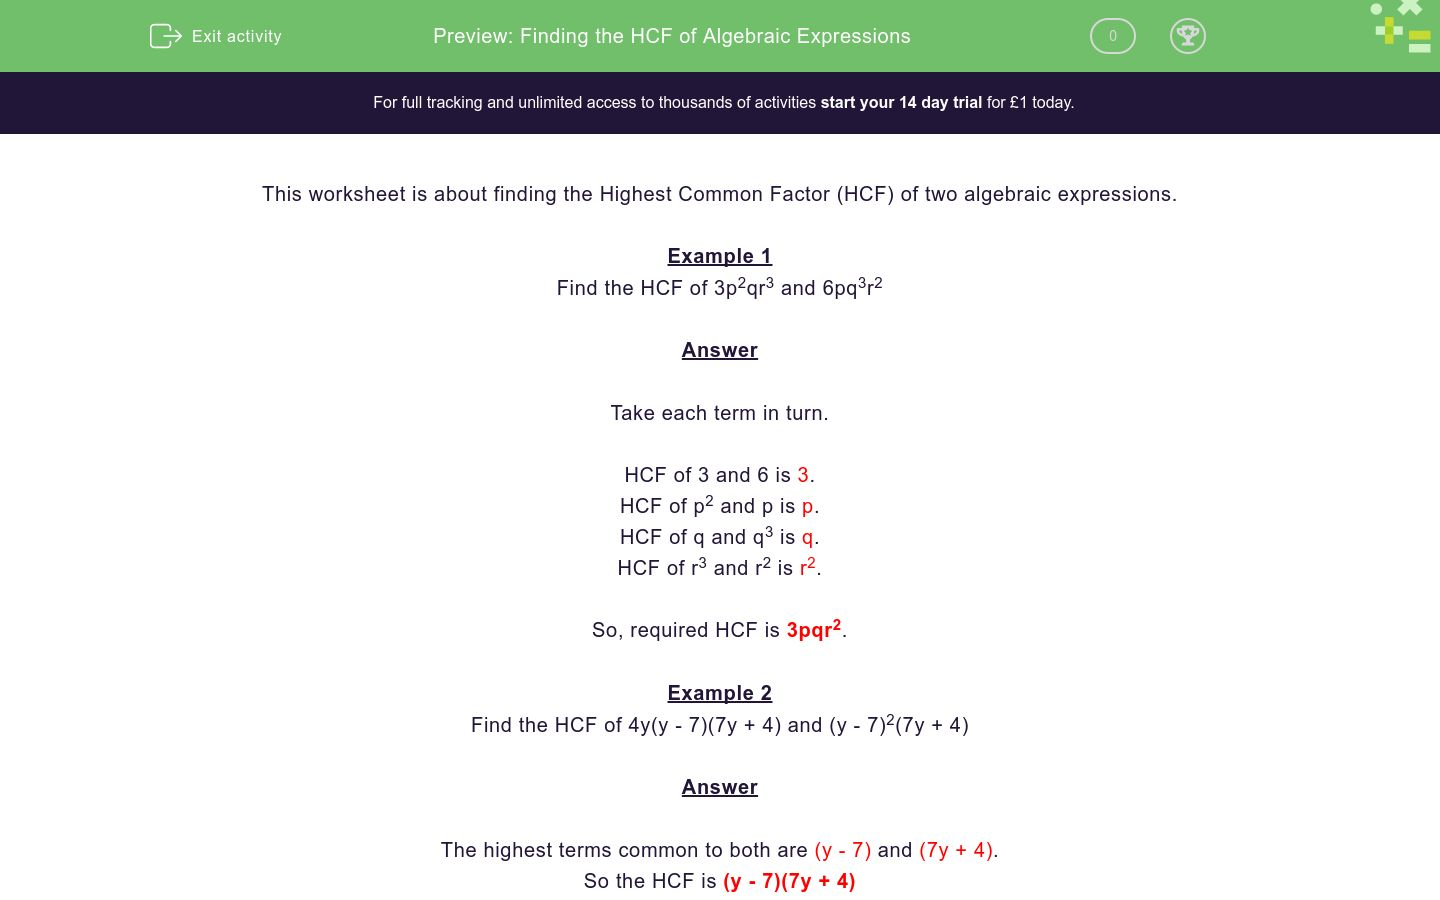 Finding the HCF of Algebraic Expressions Worksheet - EdPlace